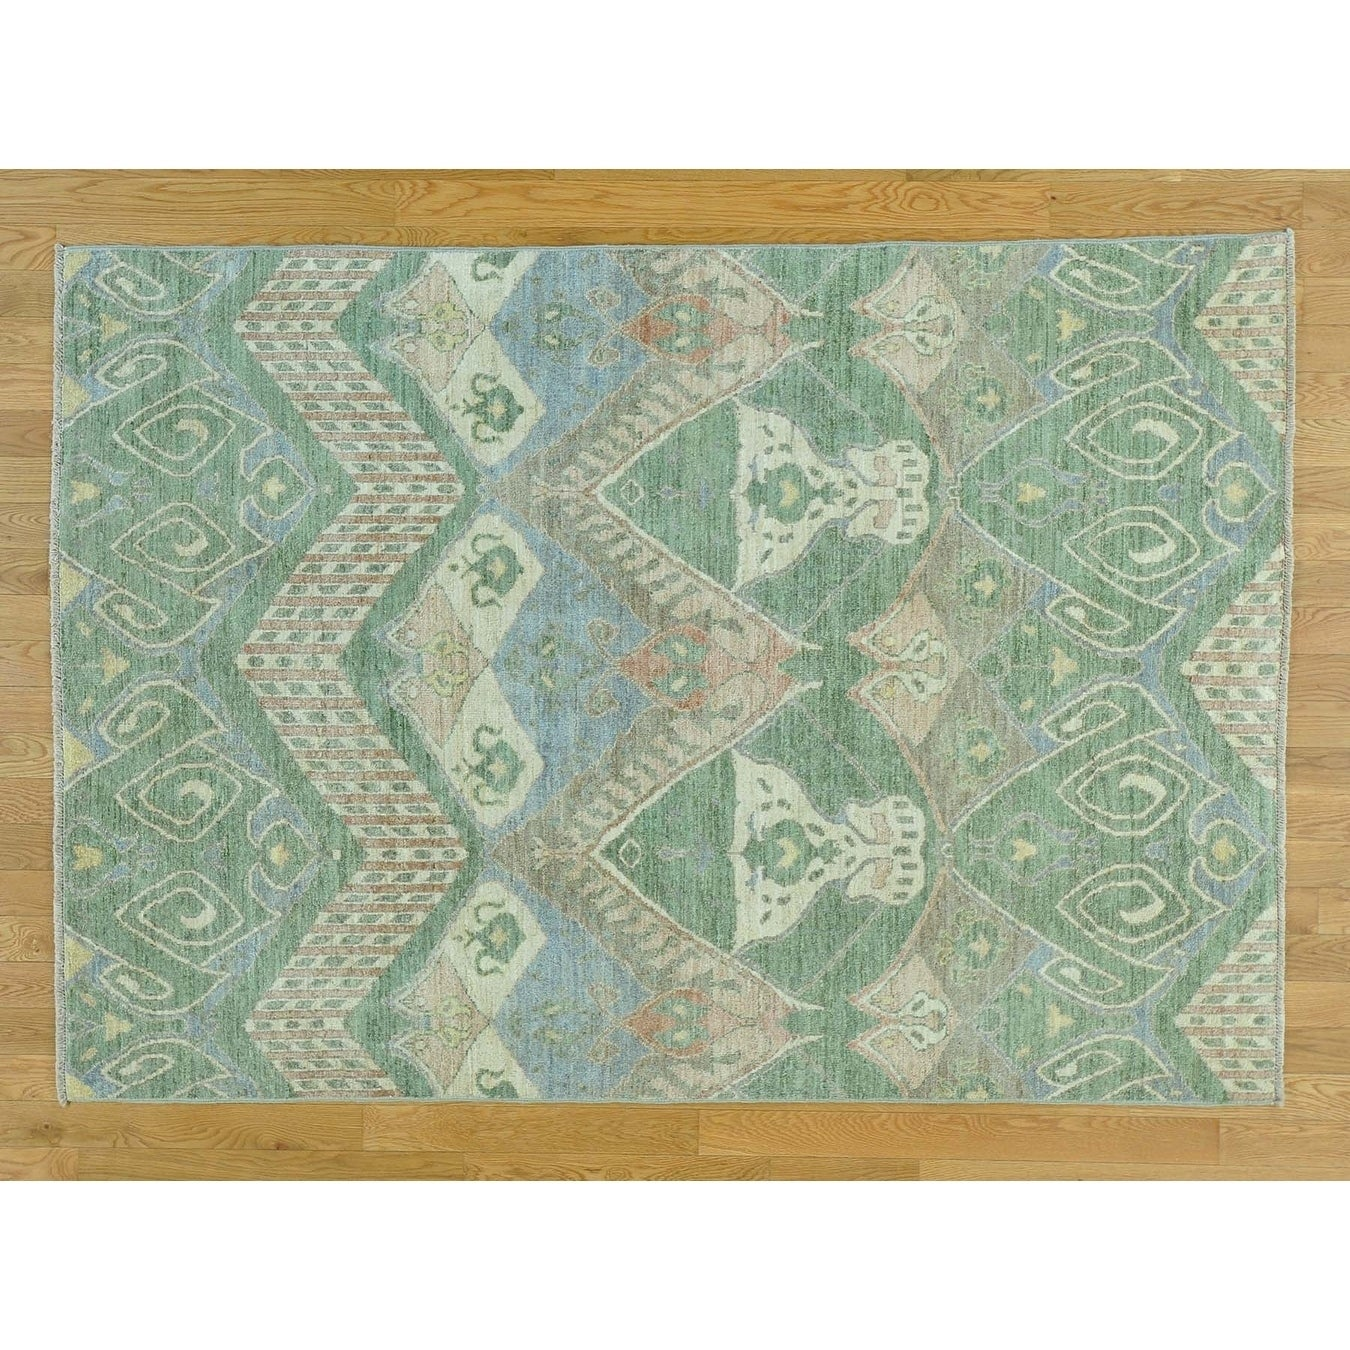 Hand Knotted Multicolored Ikat And Suzani Design with Wool Oriental Rug - 51 x 71